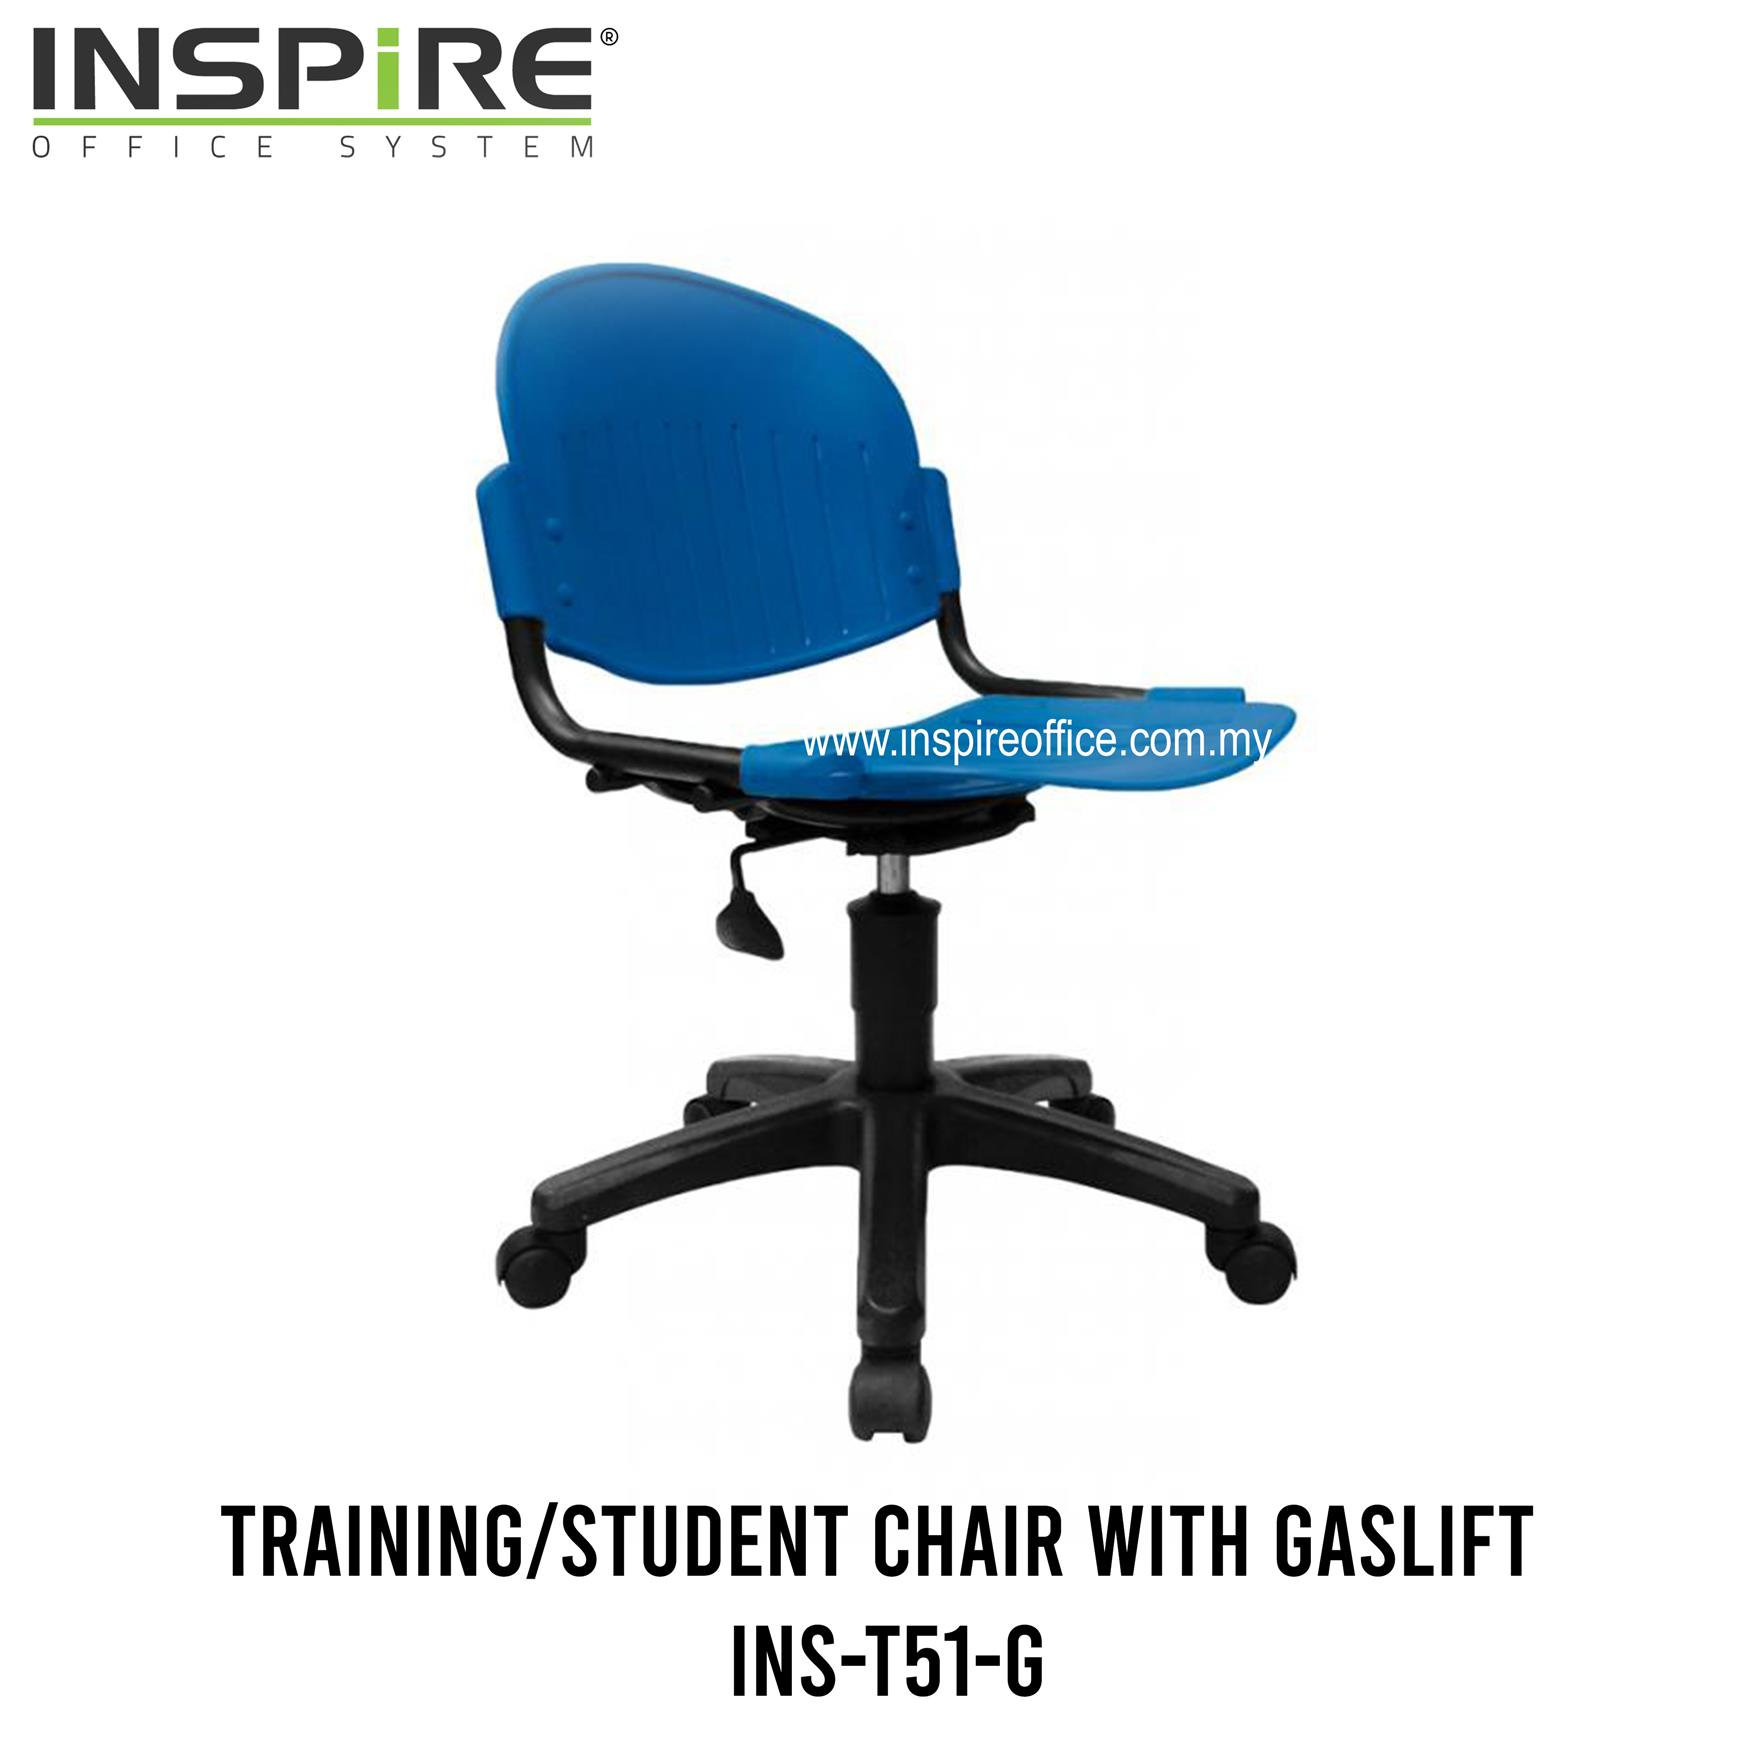 INS-T51-G Training/Student Chair with gaslift